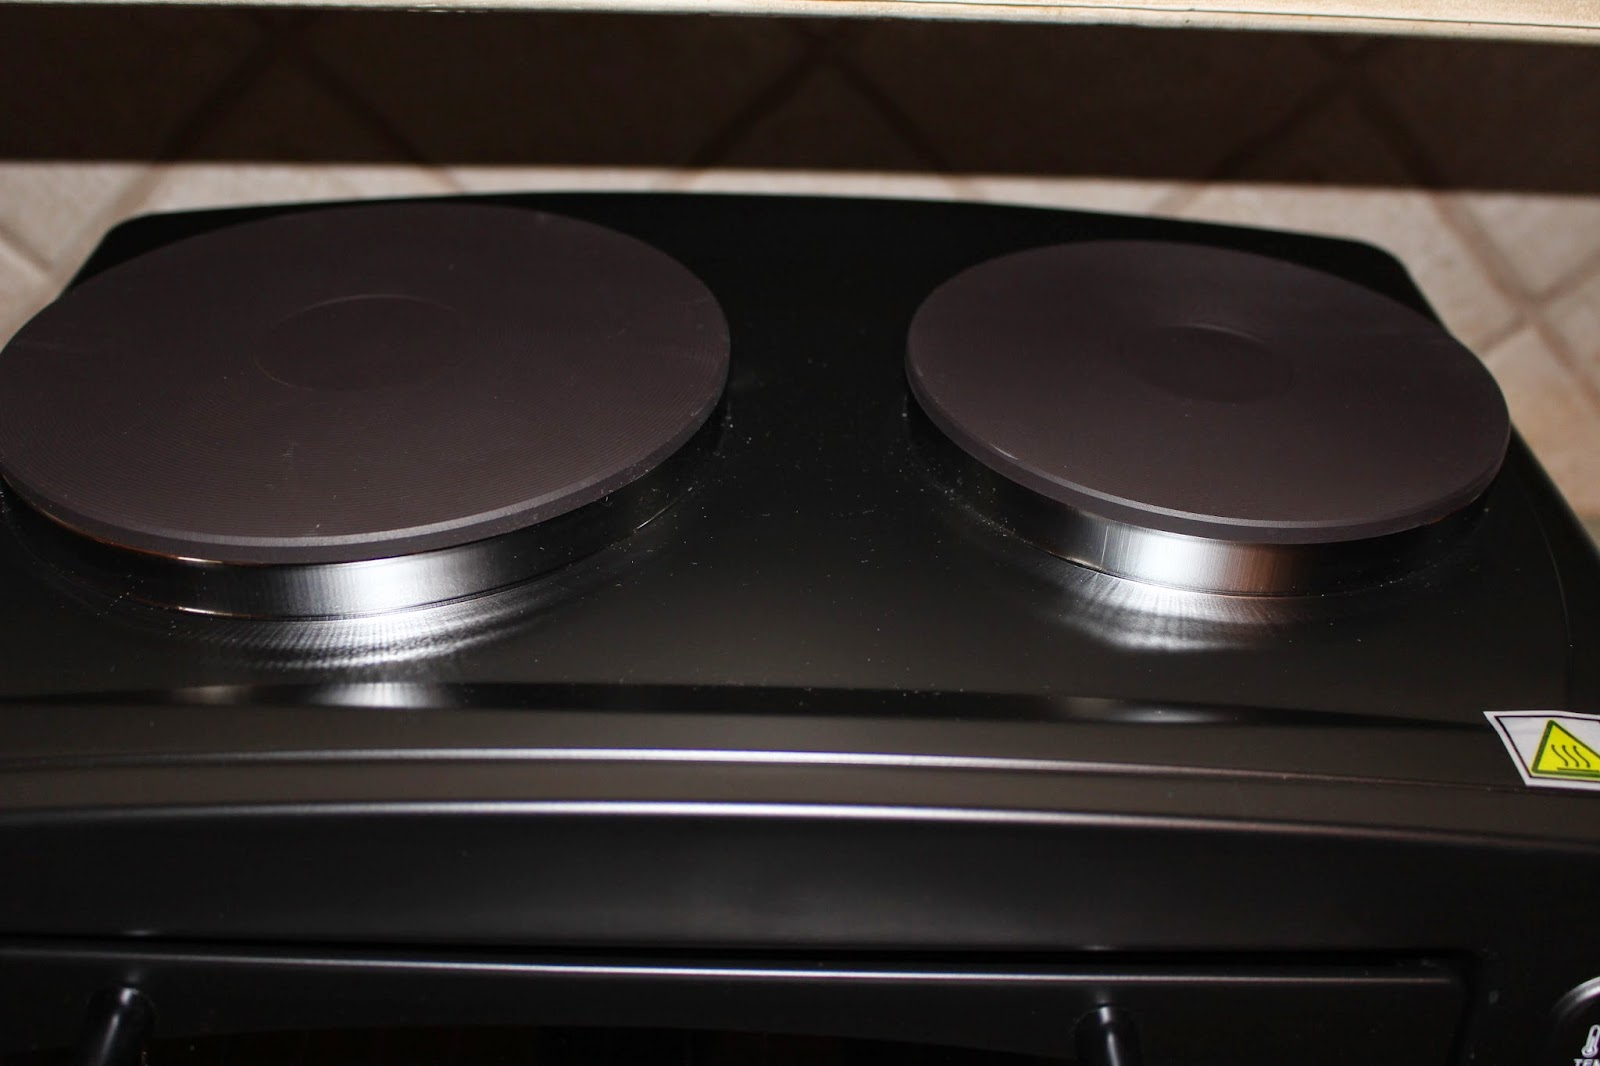 Oven Toaster: Toaster Oven Not Heating Up